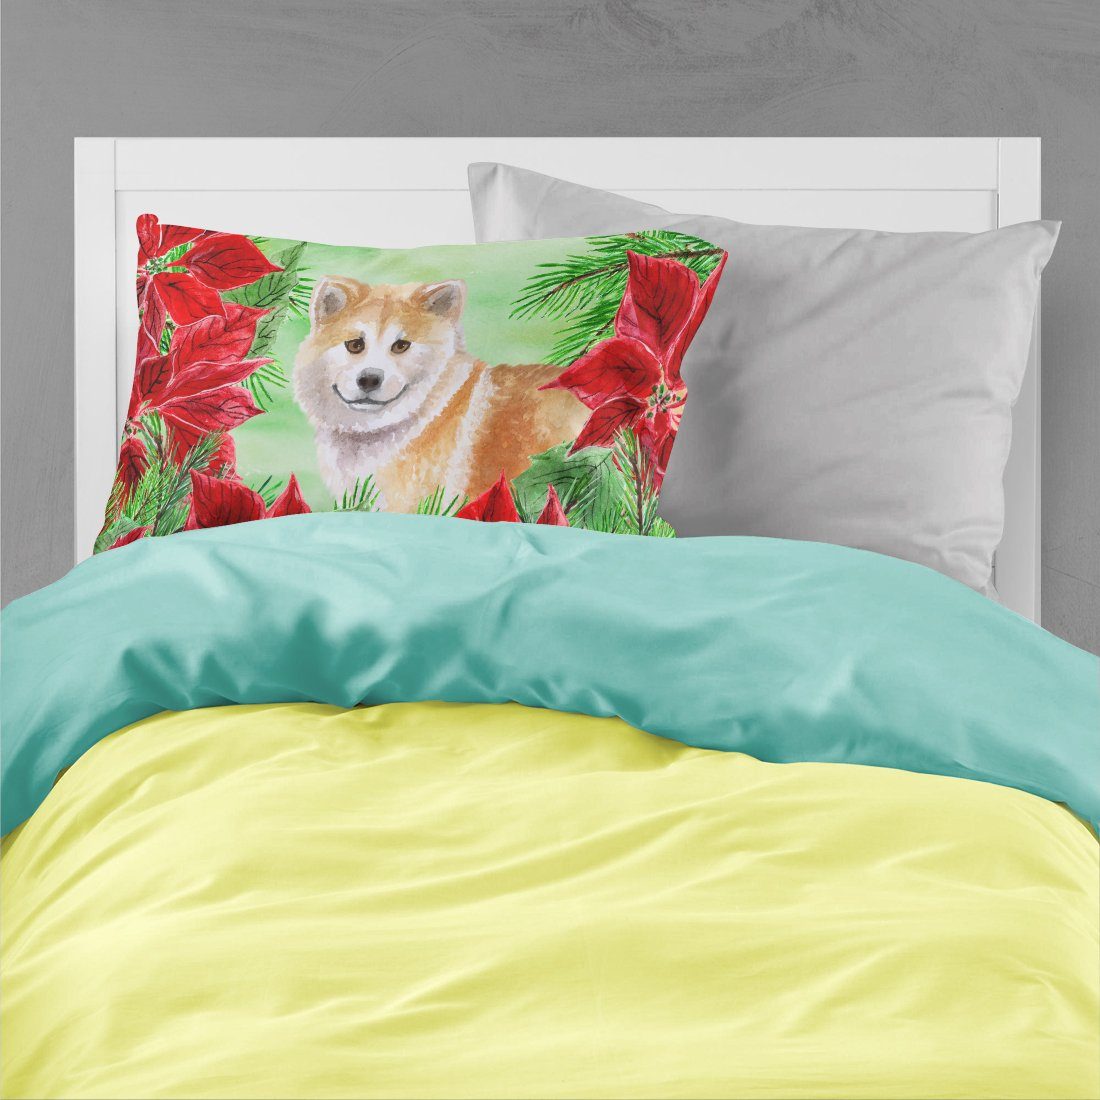 Shiba Inu Poinsettas Fabric Standard Pillowcase CK1326PILLOWCASE by Caroline's Treasures